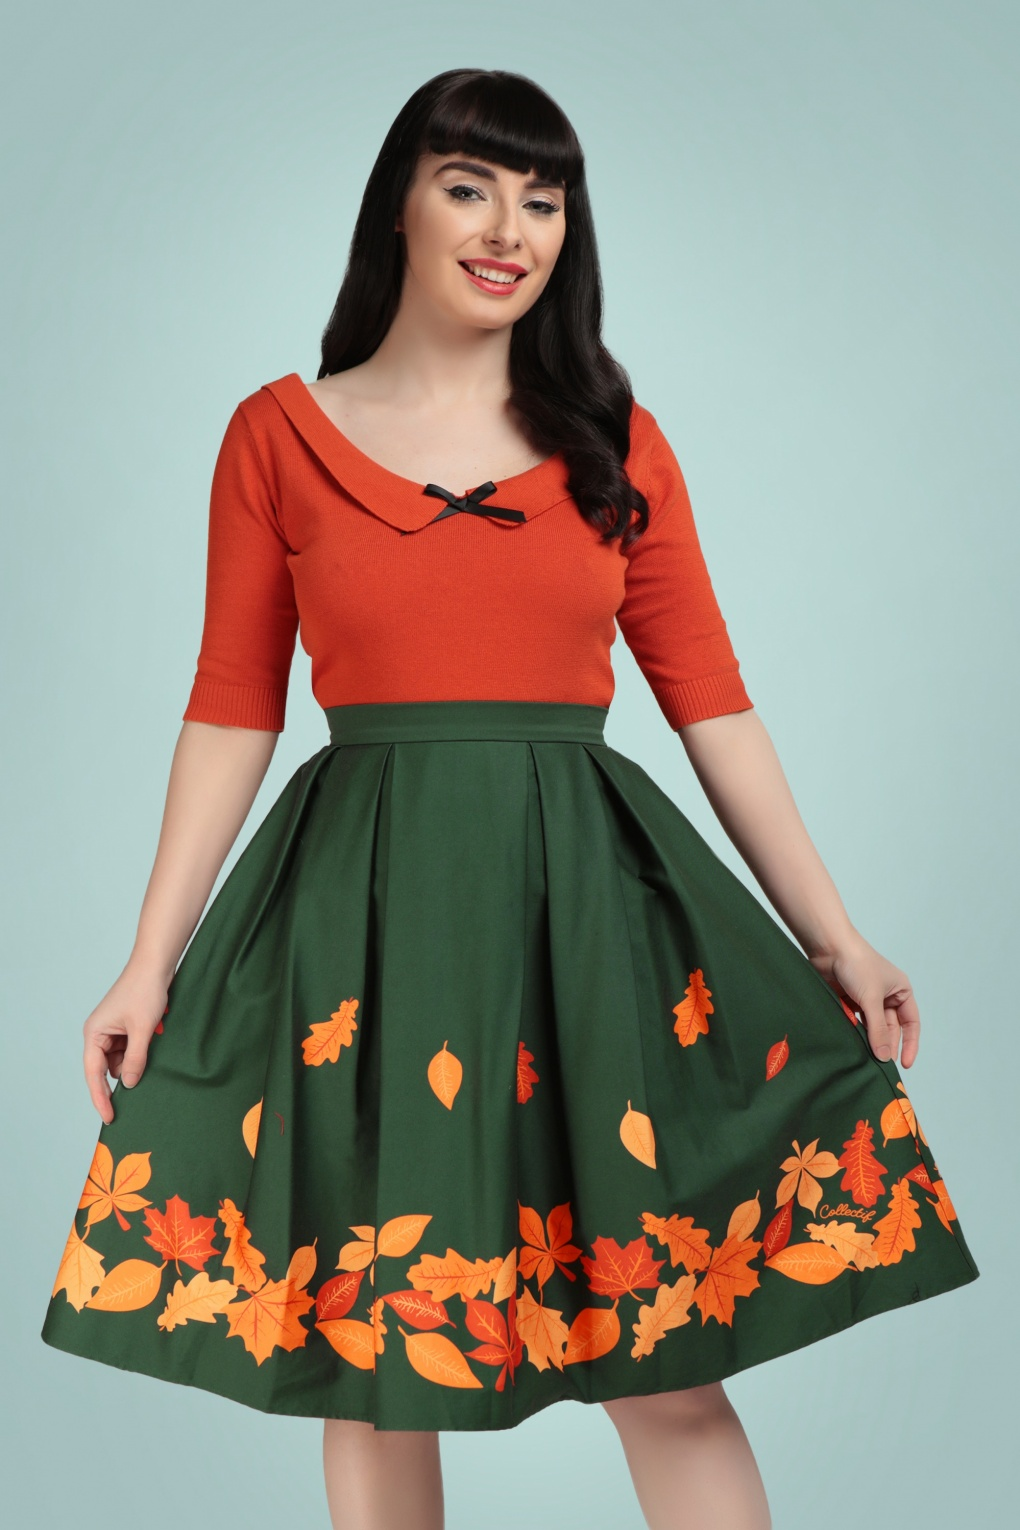 1950s Swing Skirt, Poodle Skirt, Pencil Skirts 50s Marilu Border Leaves Swing Skirt in Green £49.87 AT vintagedancer.com